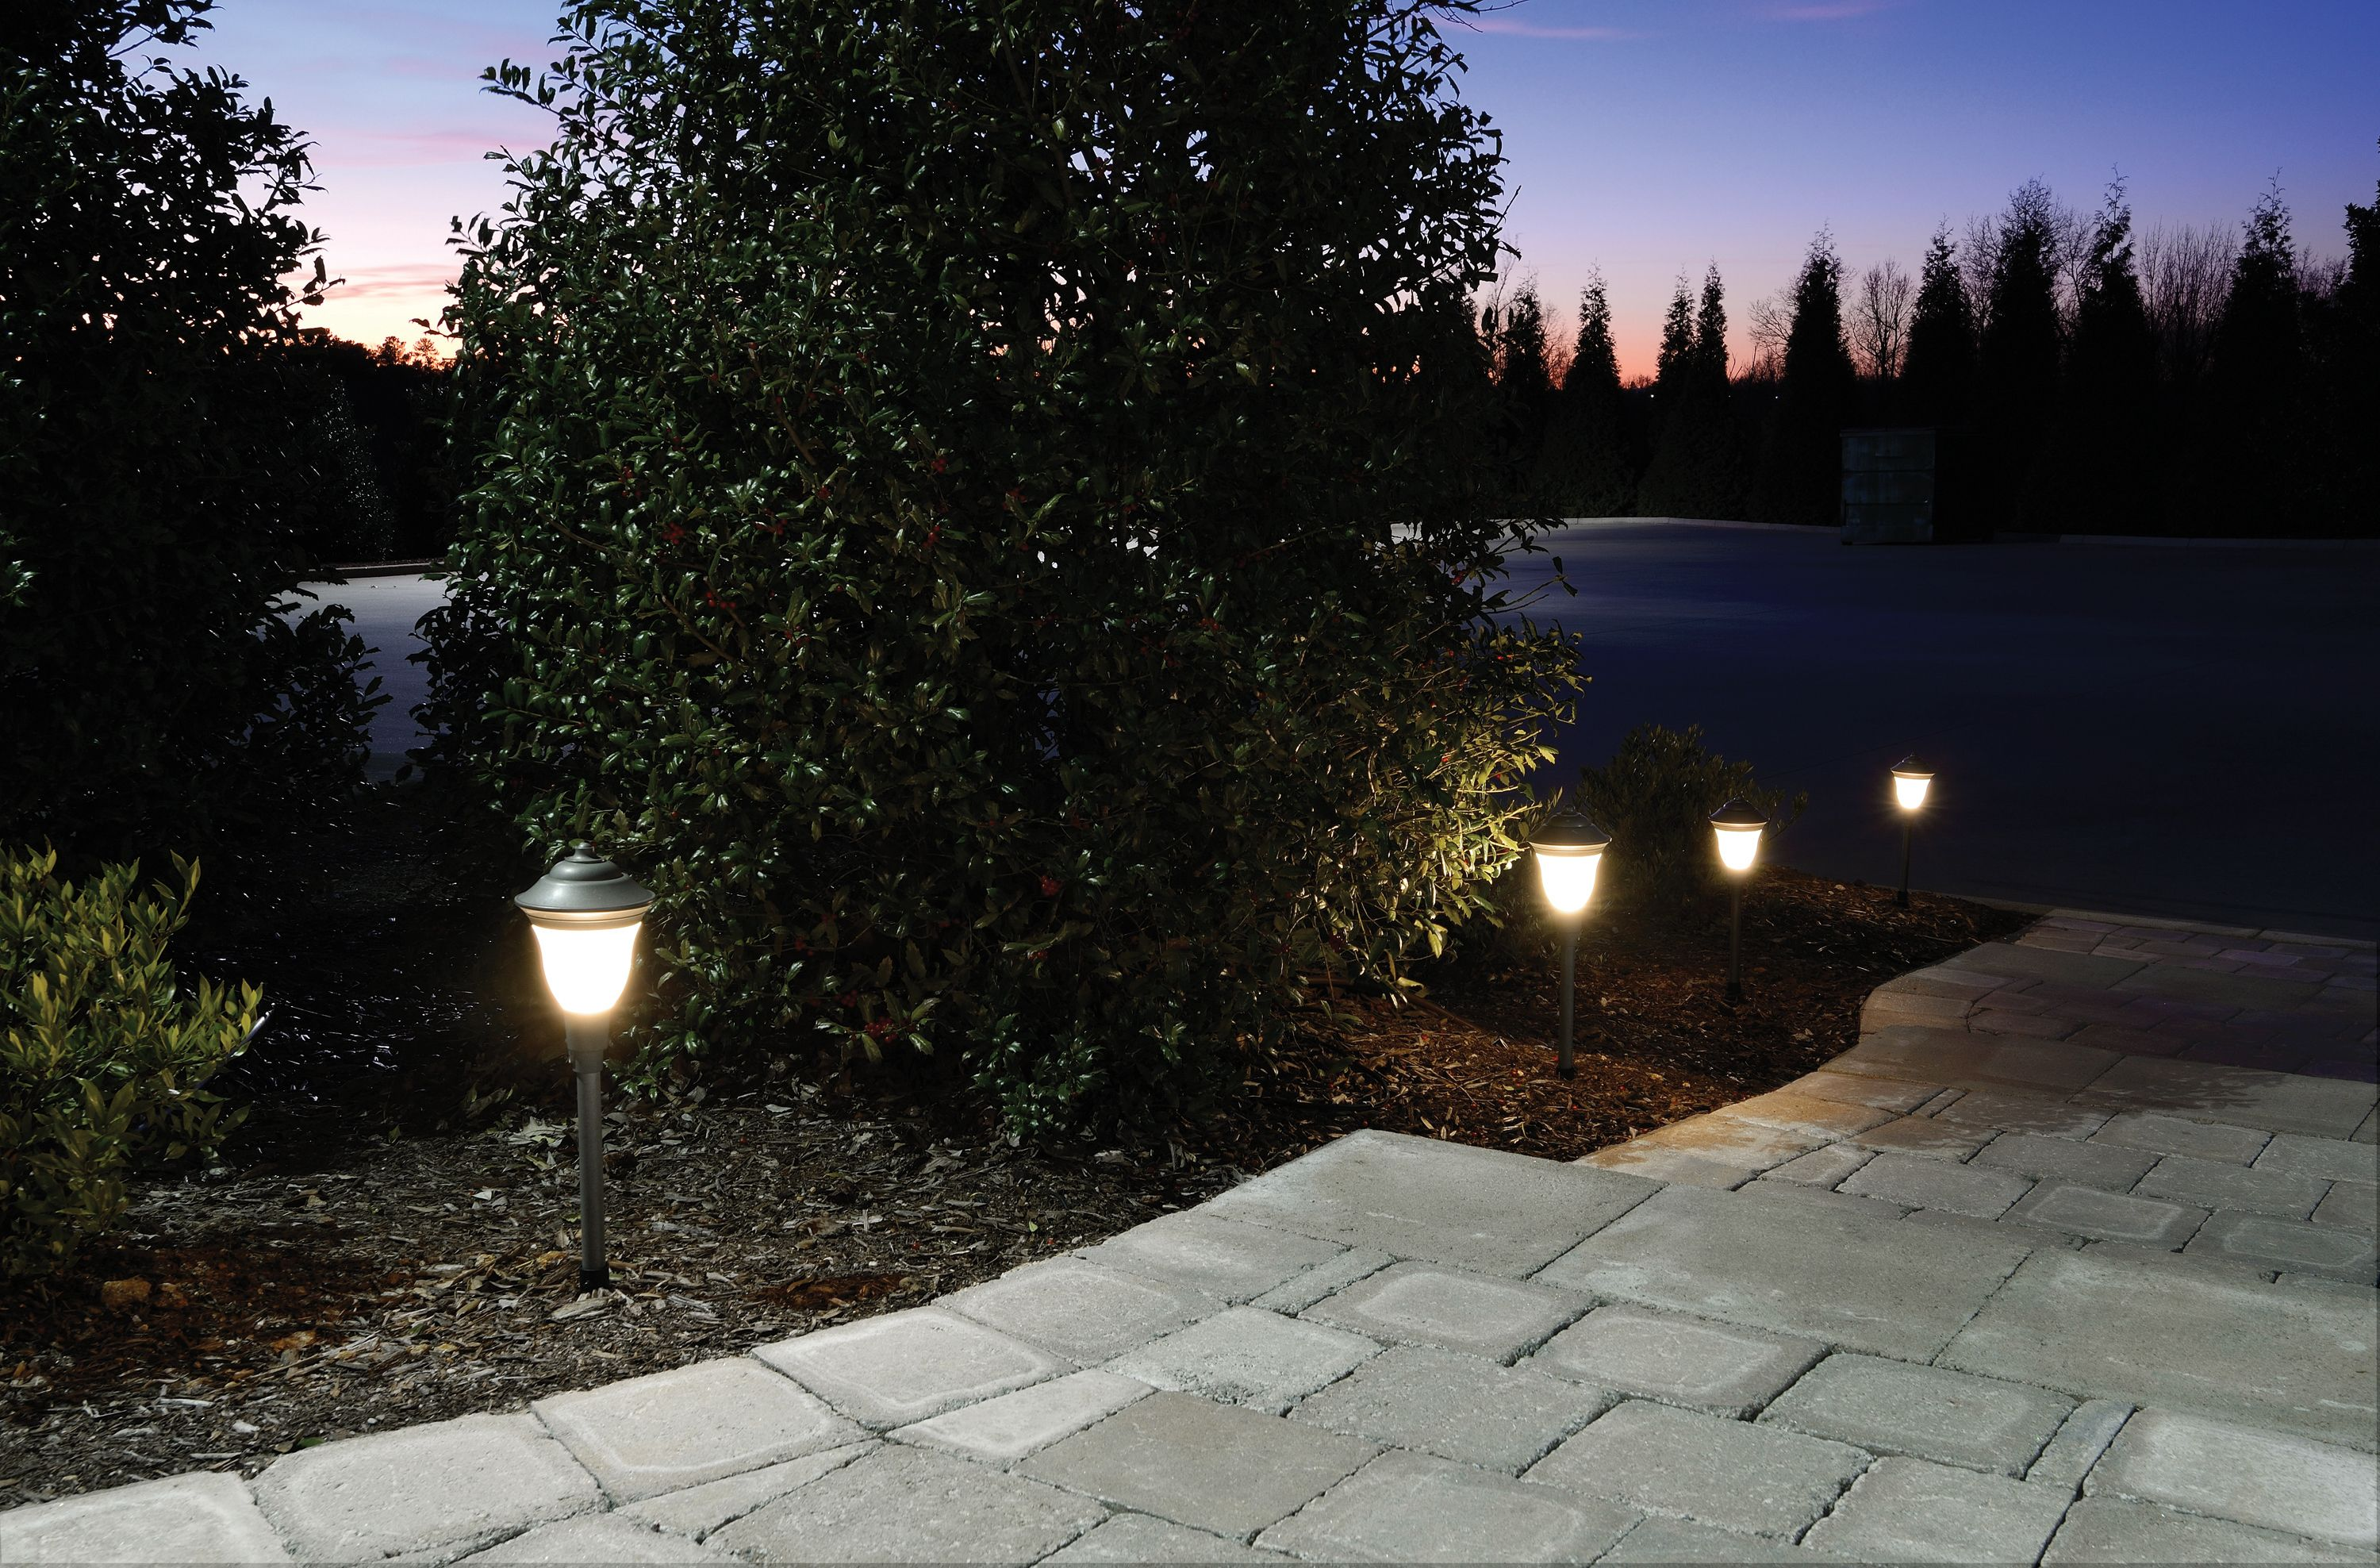 Hubbell lighting greenville sc hubbell outdoor lighting 12v led hubbell lighting greenville sc hubbell outdoor lighting 12v led landscape greenville gn aloadofball Gallery